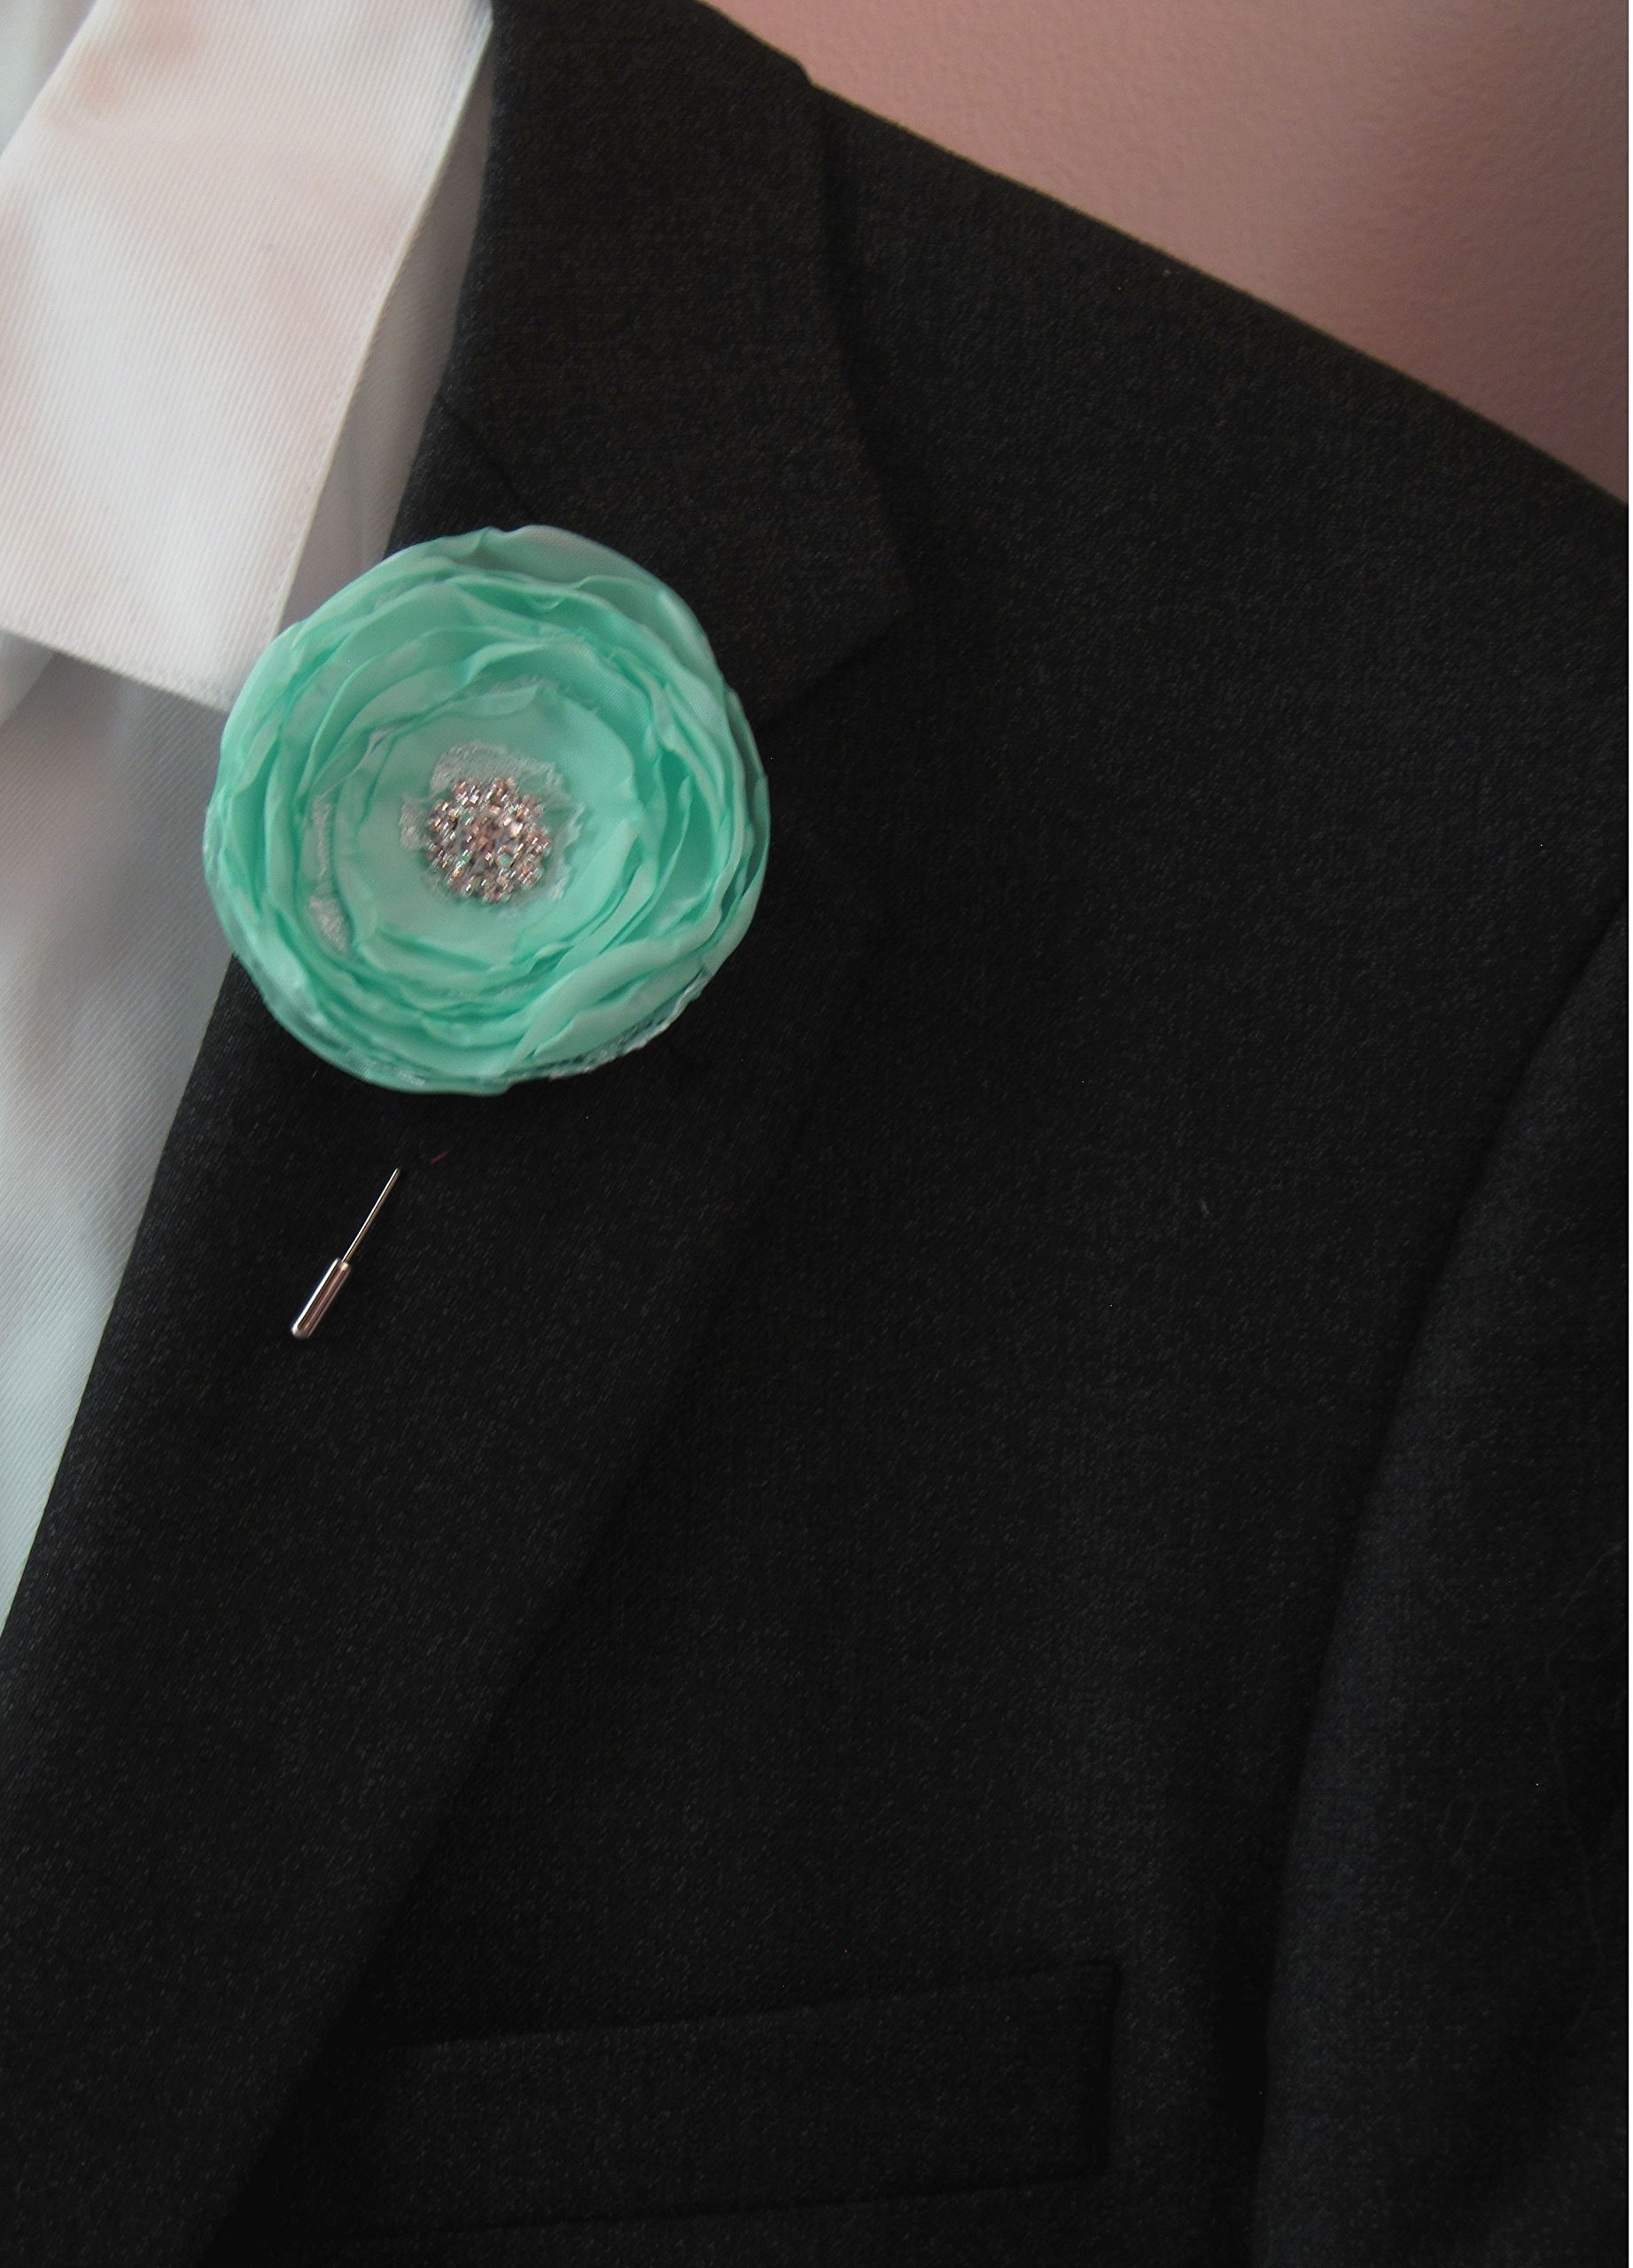 Robin's Egg Blue Boutonniere, Wedding Fabric Flower Prom Shabby Chic Spa Pool Mint Buttonhole, Groom Groomsman Vintage-Style Lapel Pin